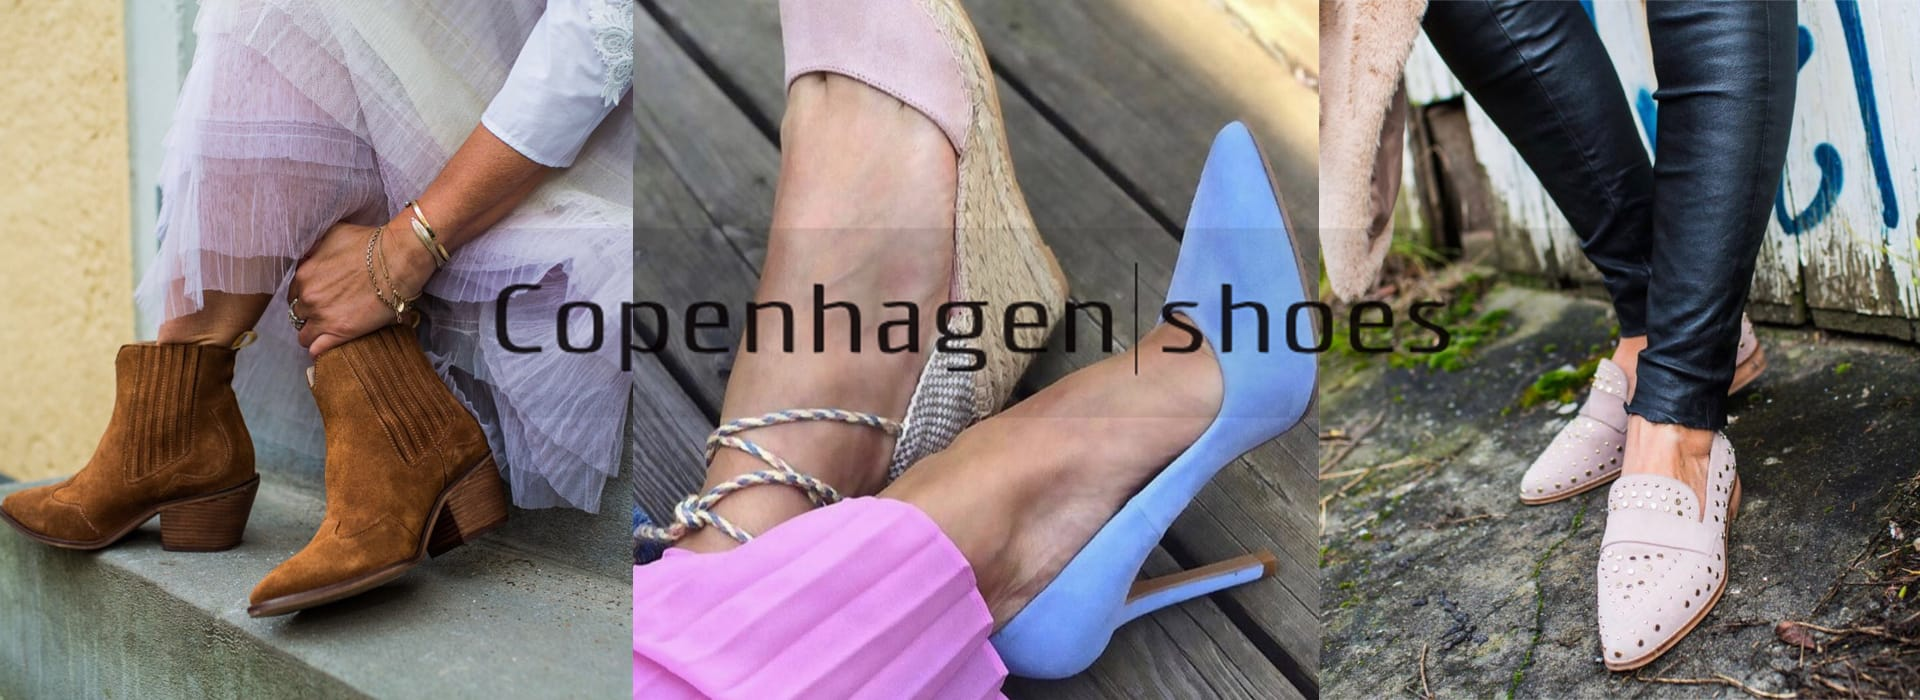 COPENHAGEN SHOES